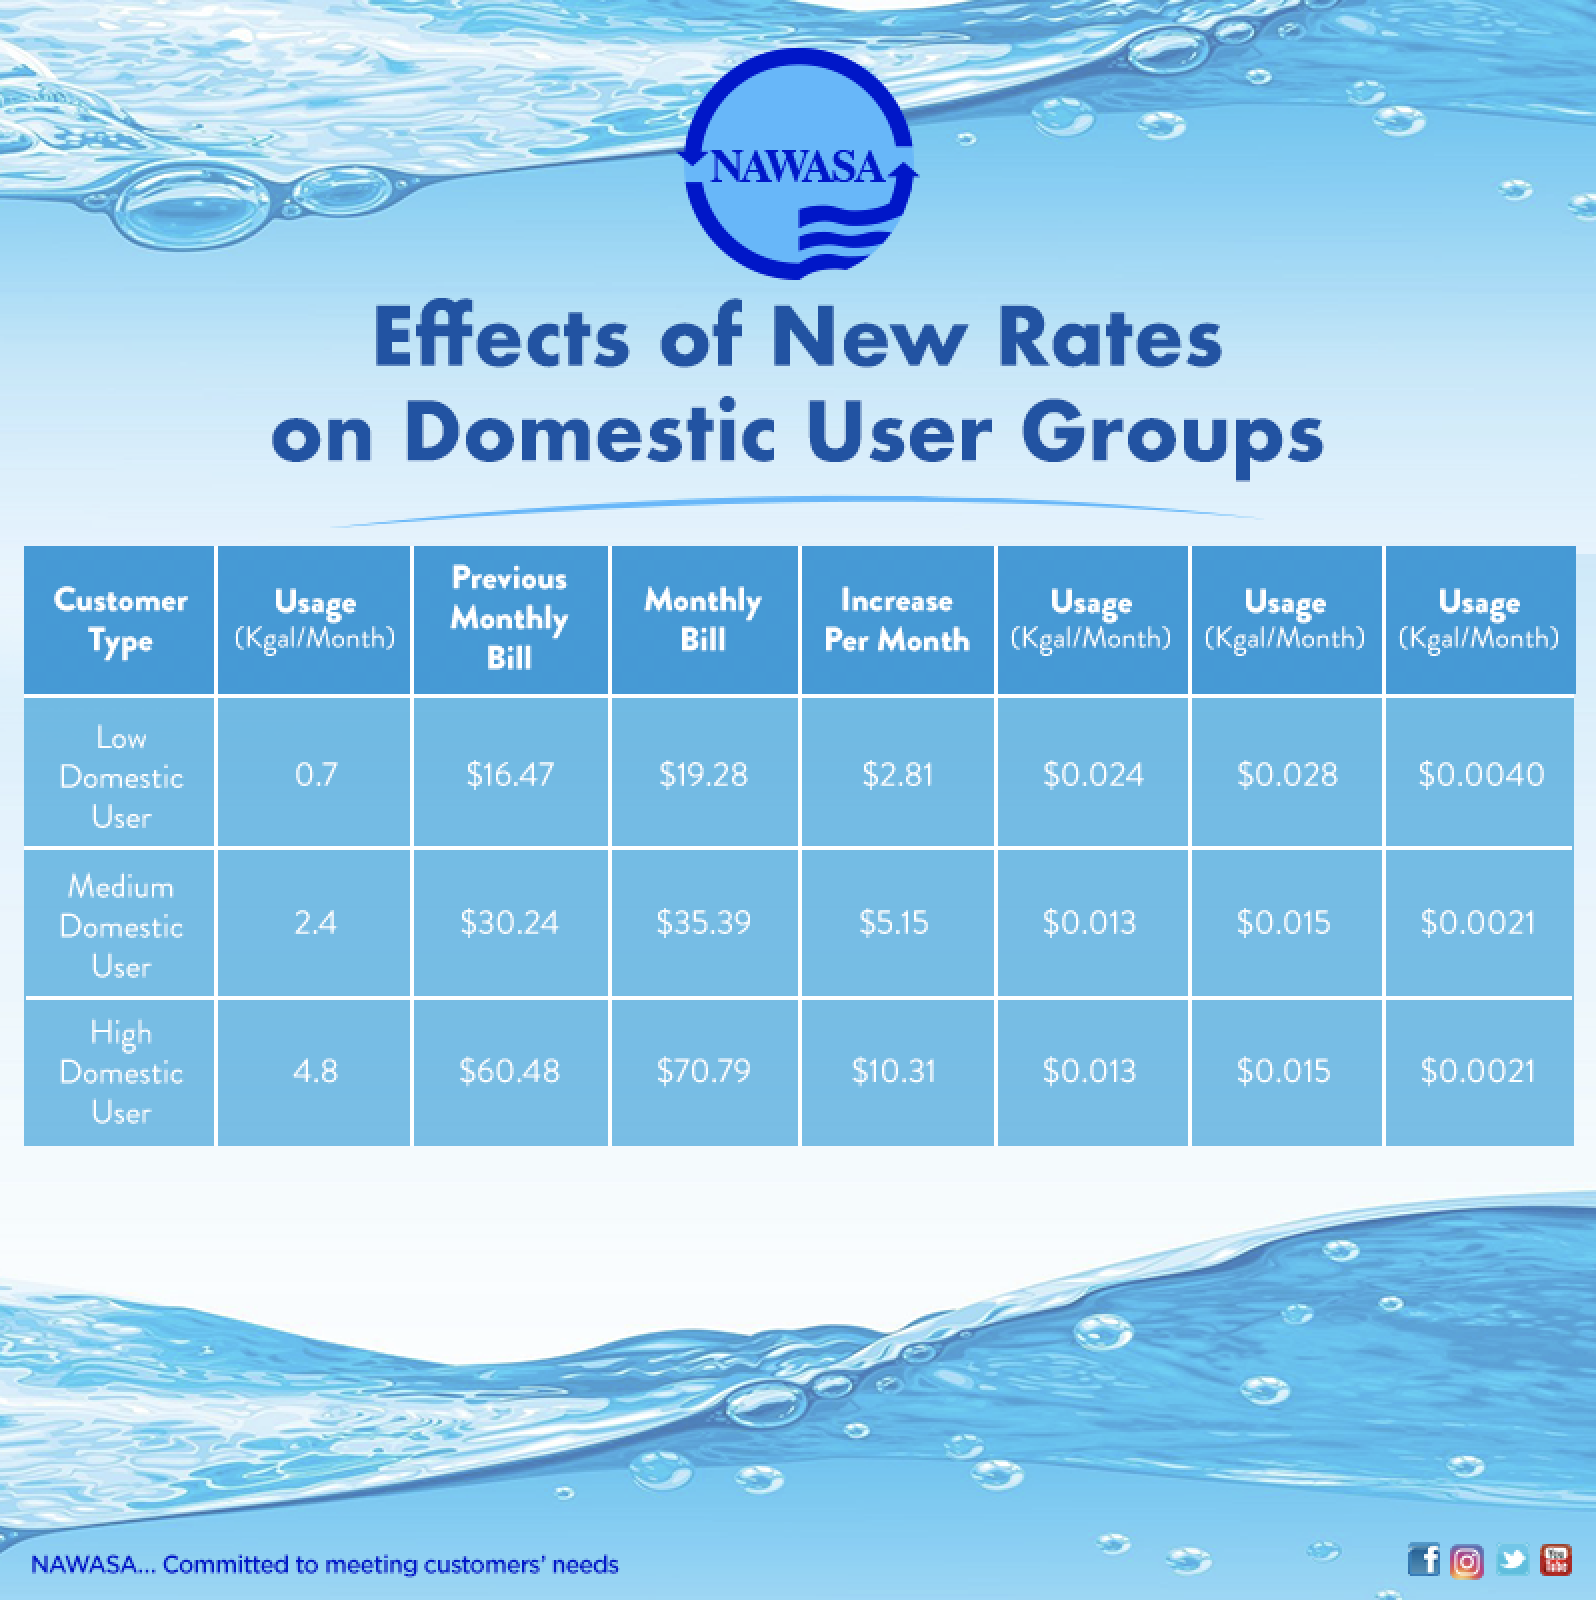 Effects of New Rates on Domestic Consumers